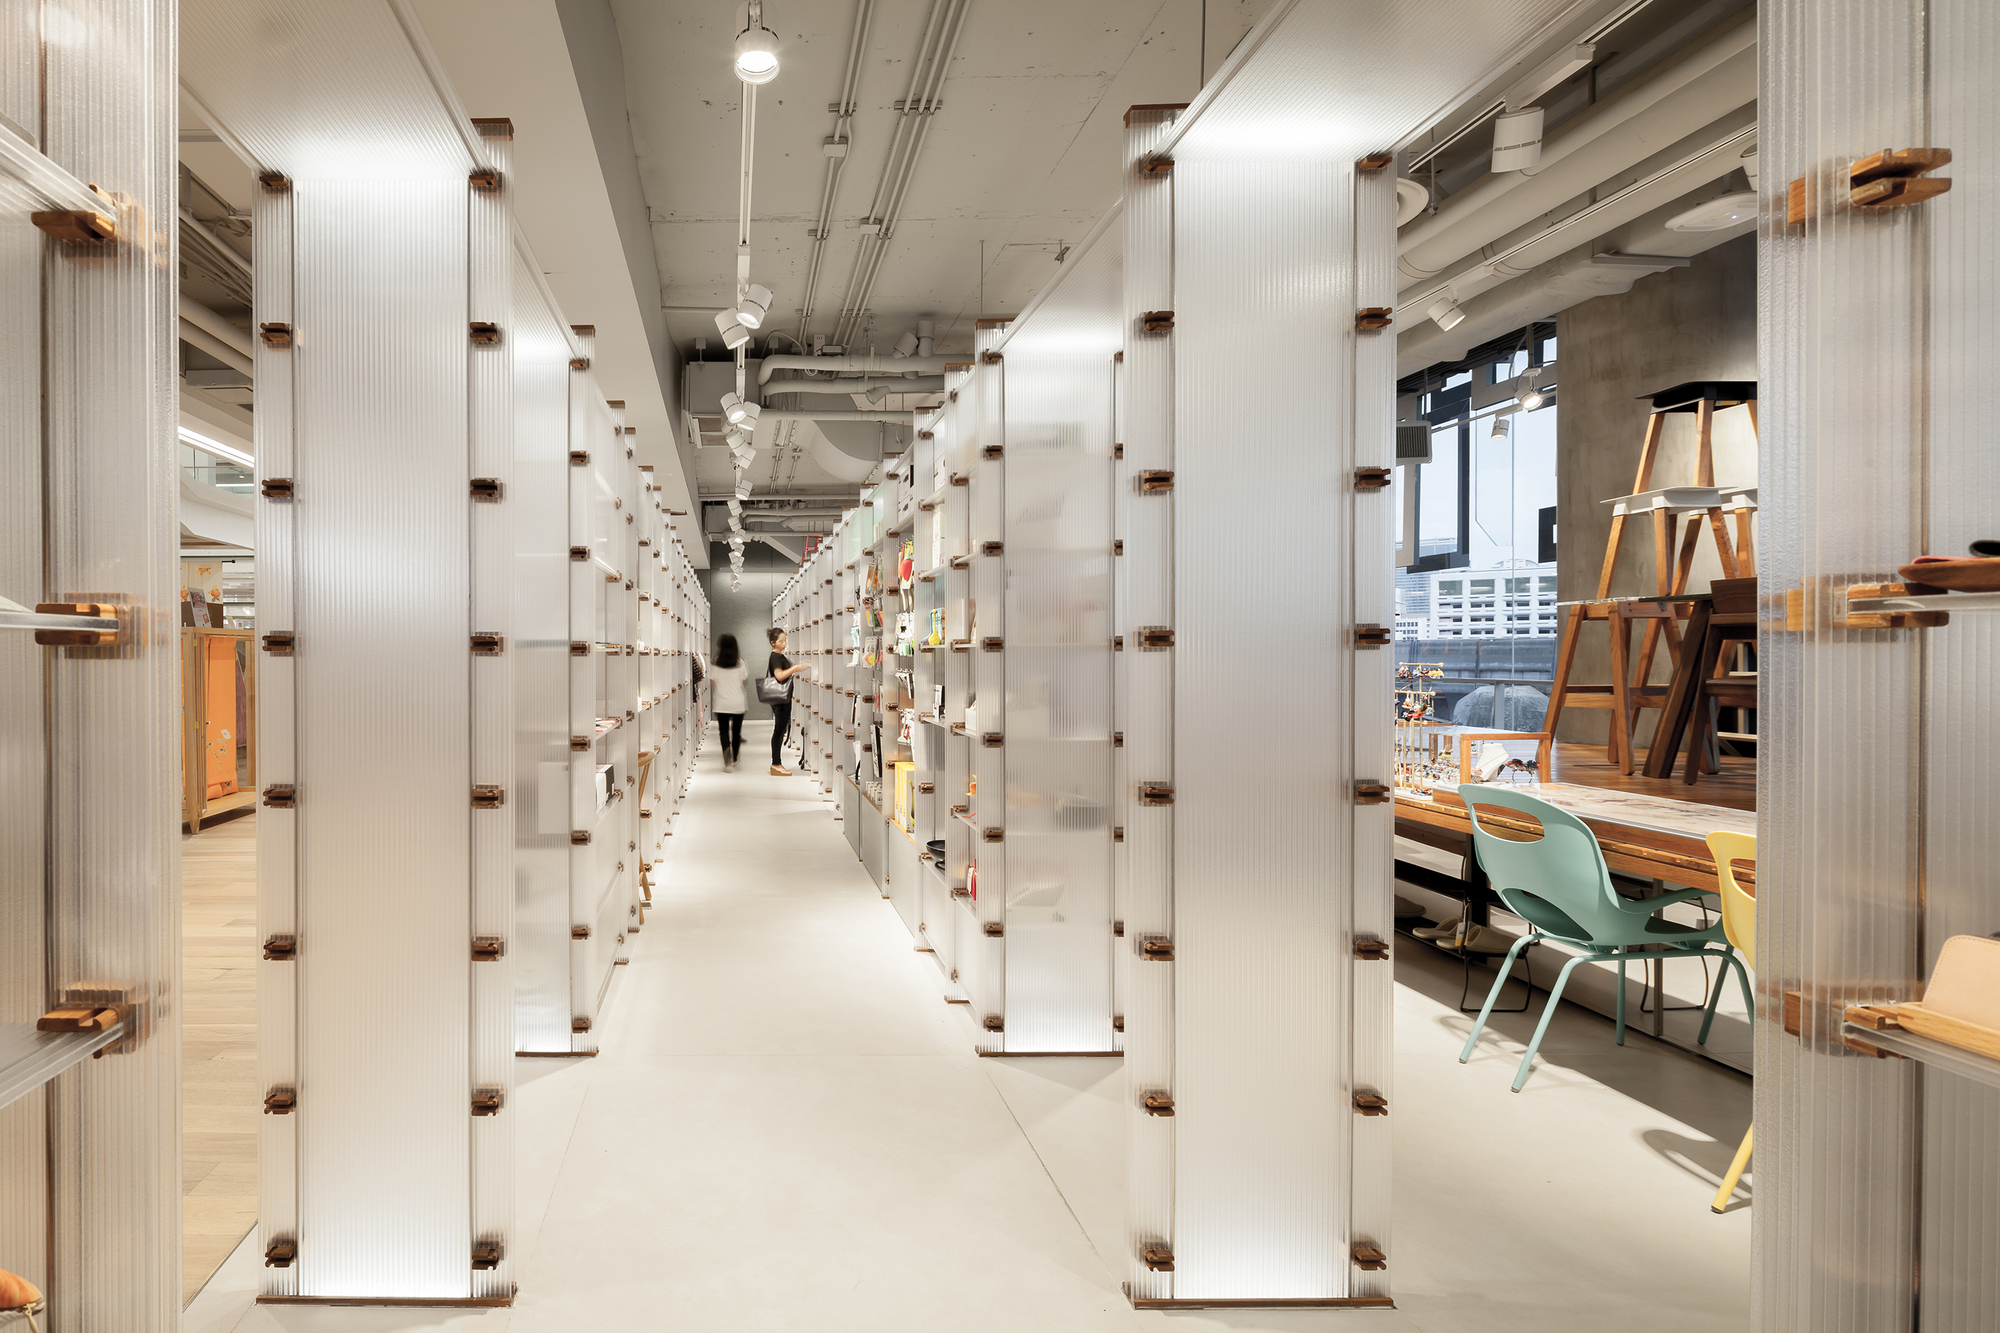 Room Concept Store Maincourse Architect Archdaily